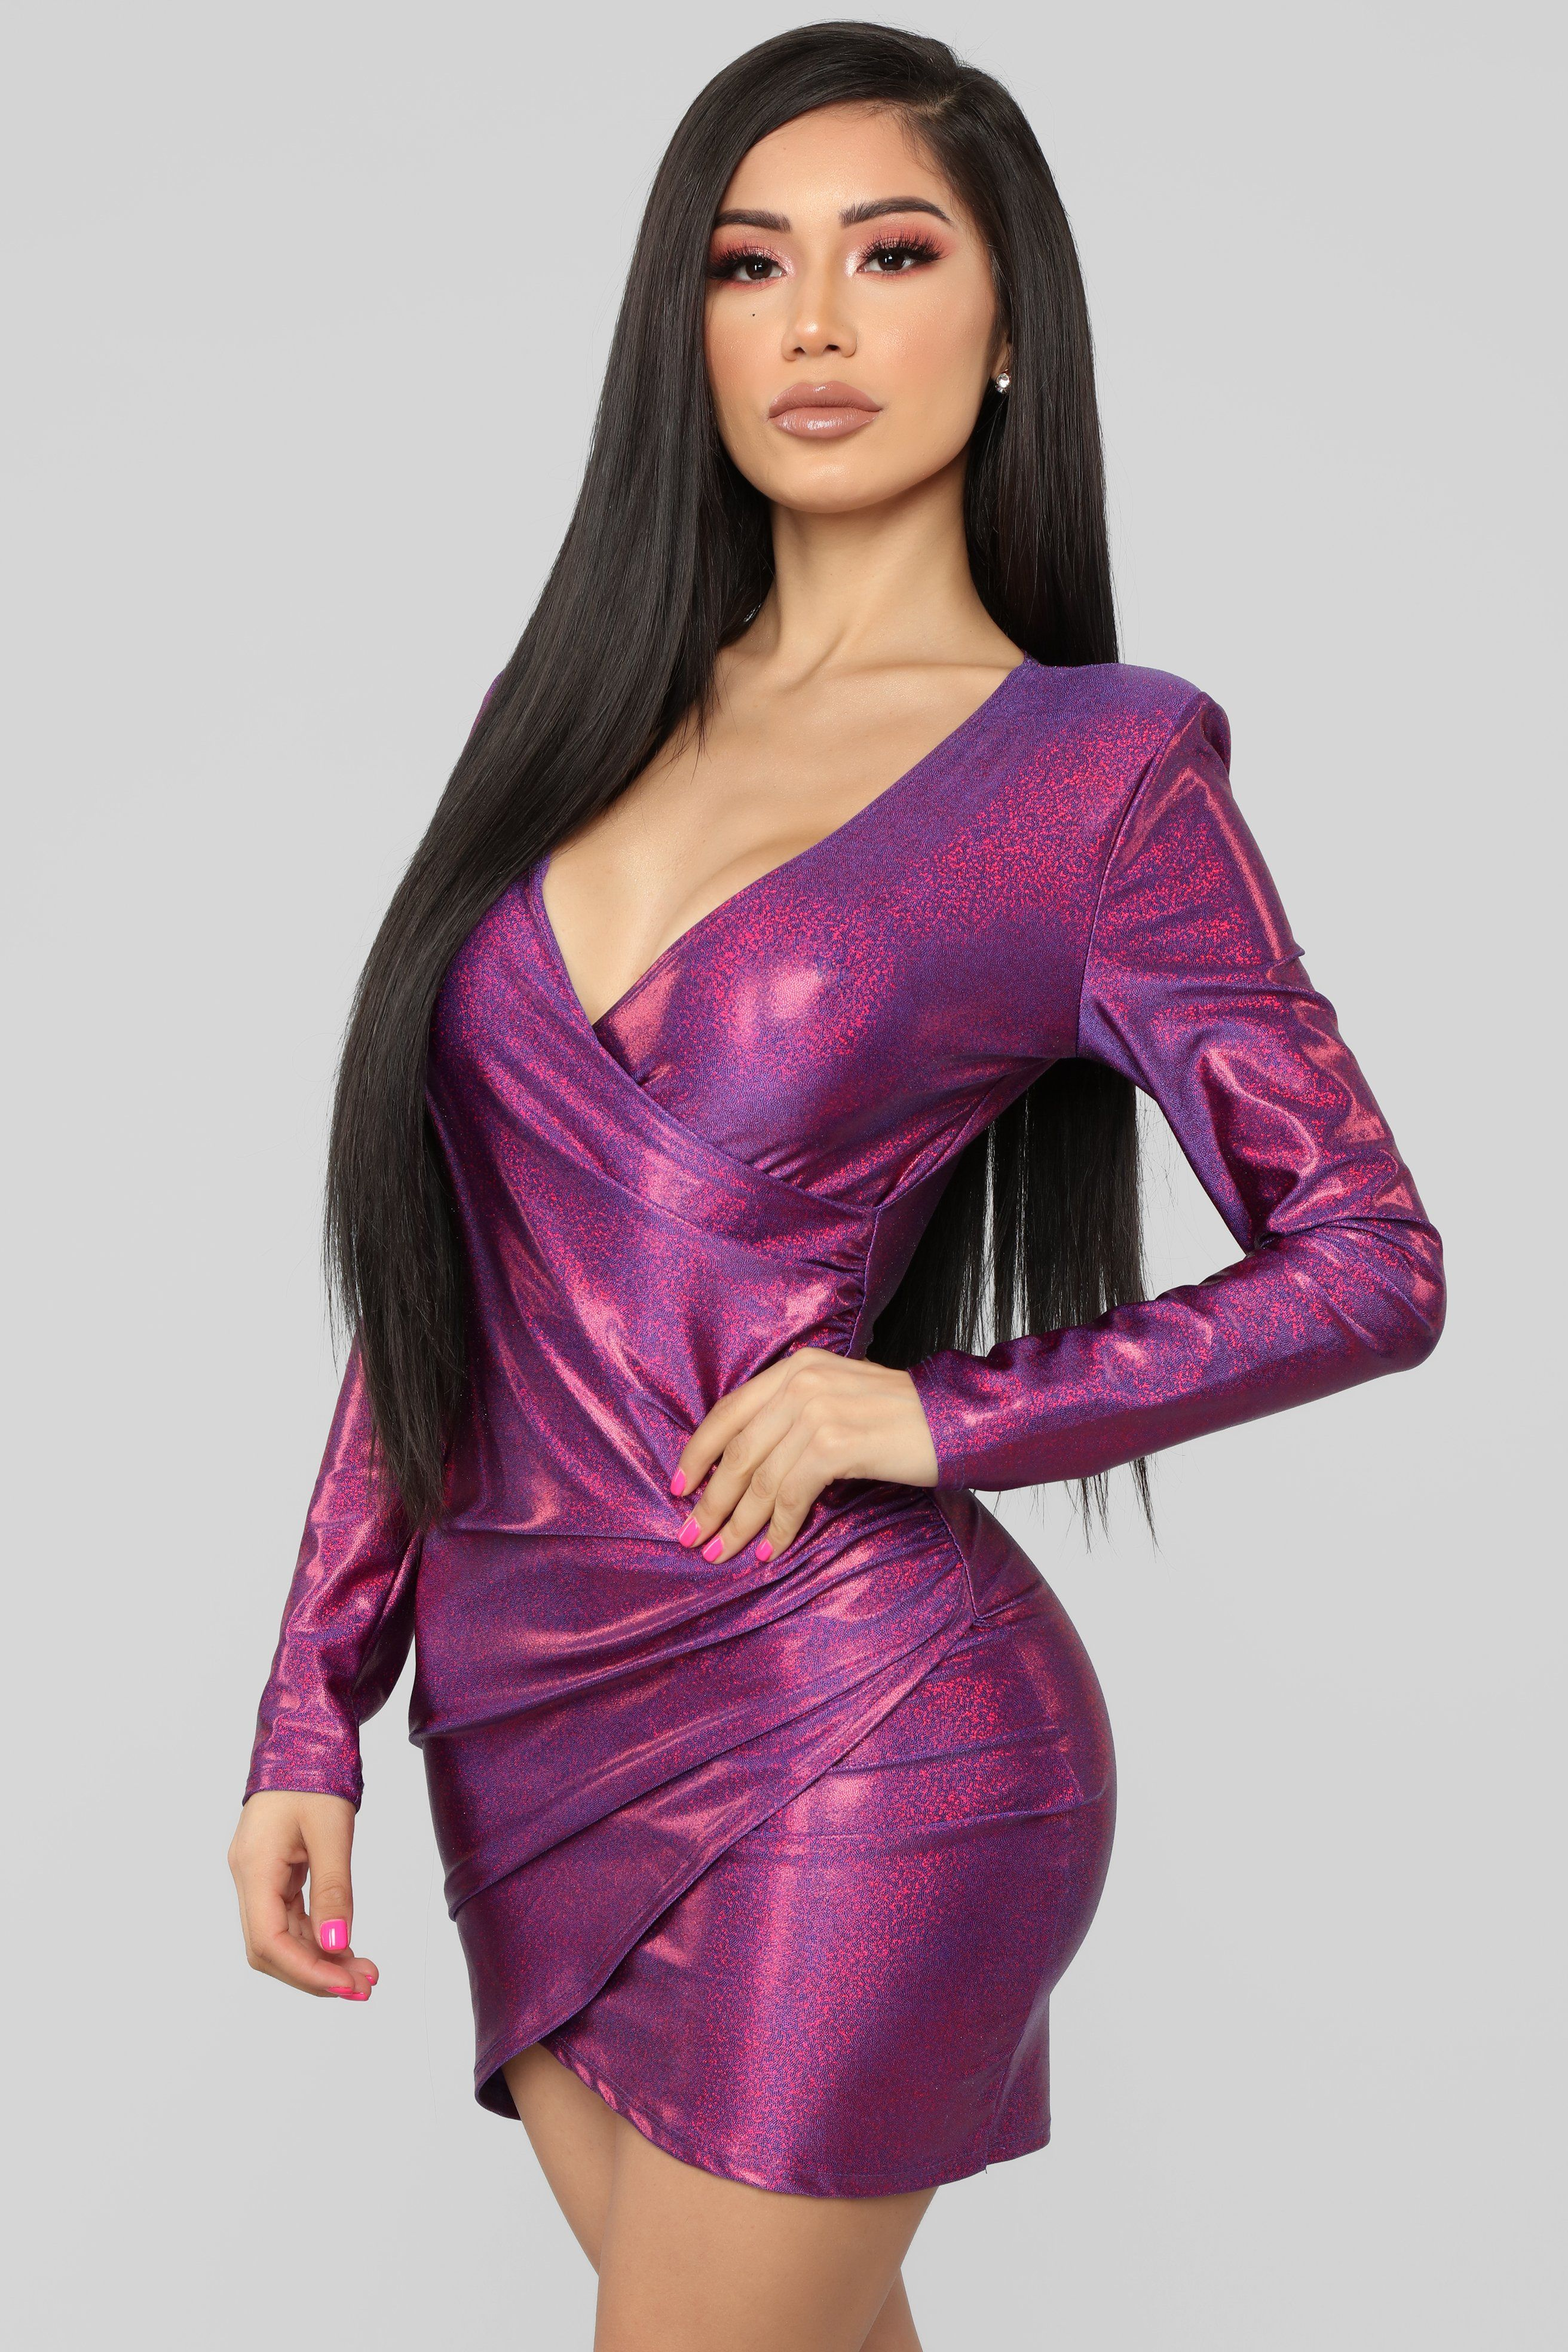 Brighten My Life Holographic Dress (With